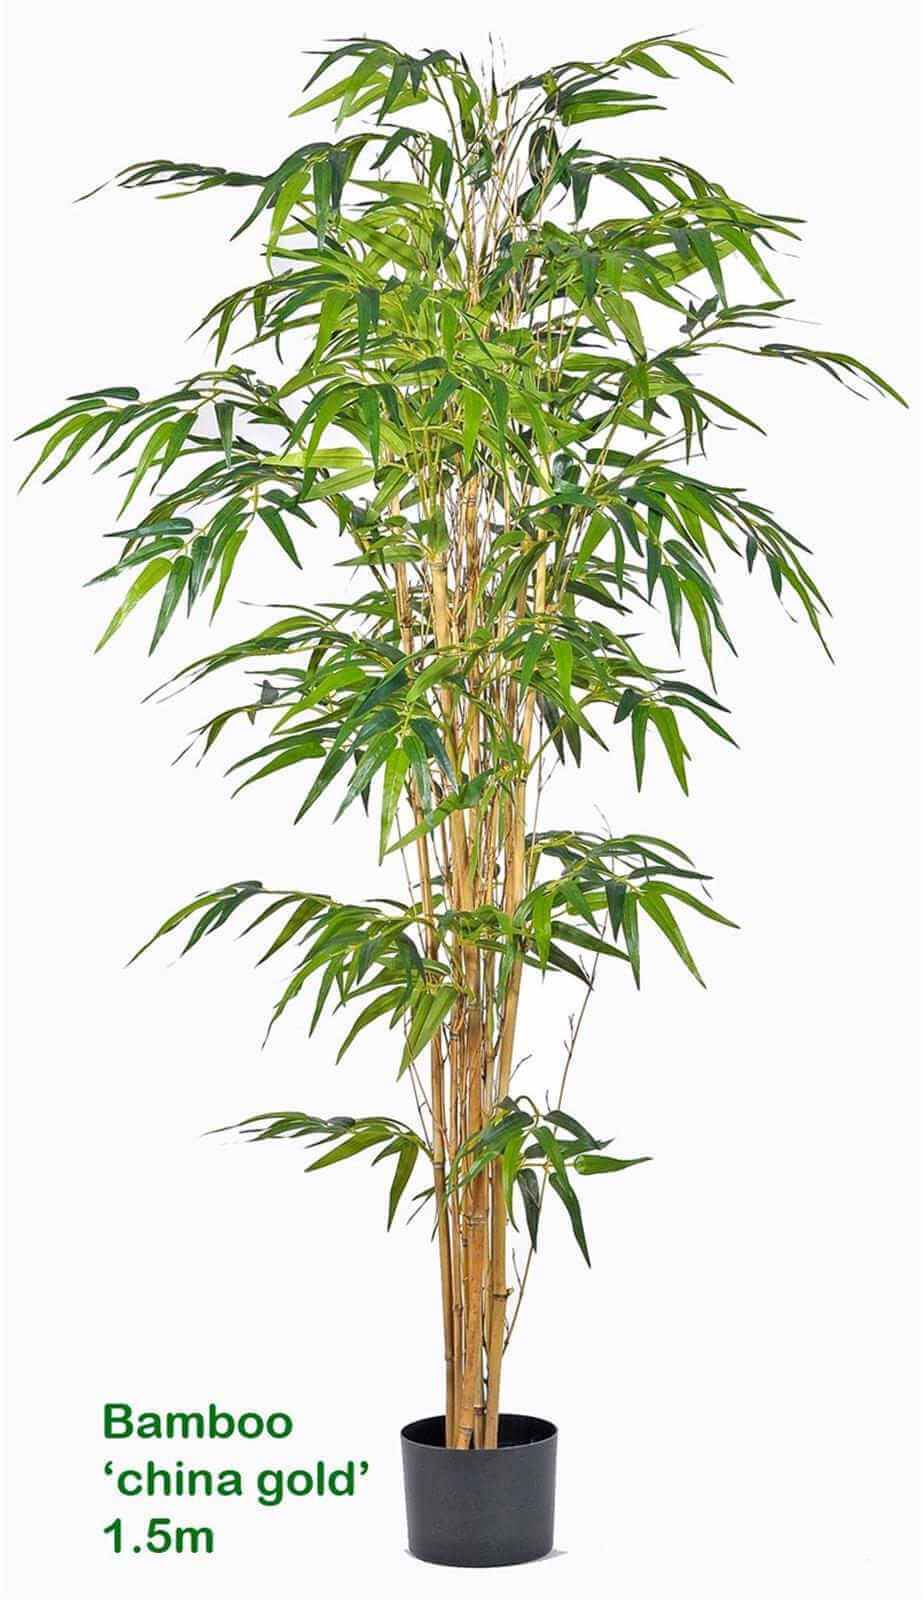 Bamboo 'china gold' 1.5m